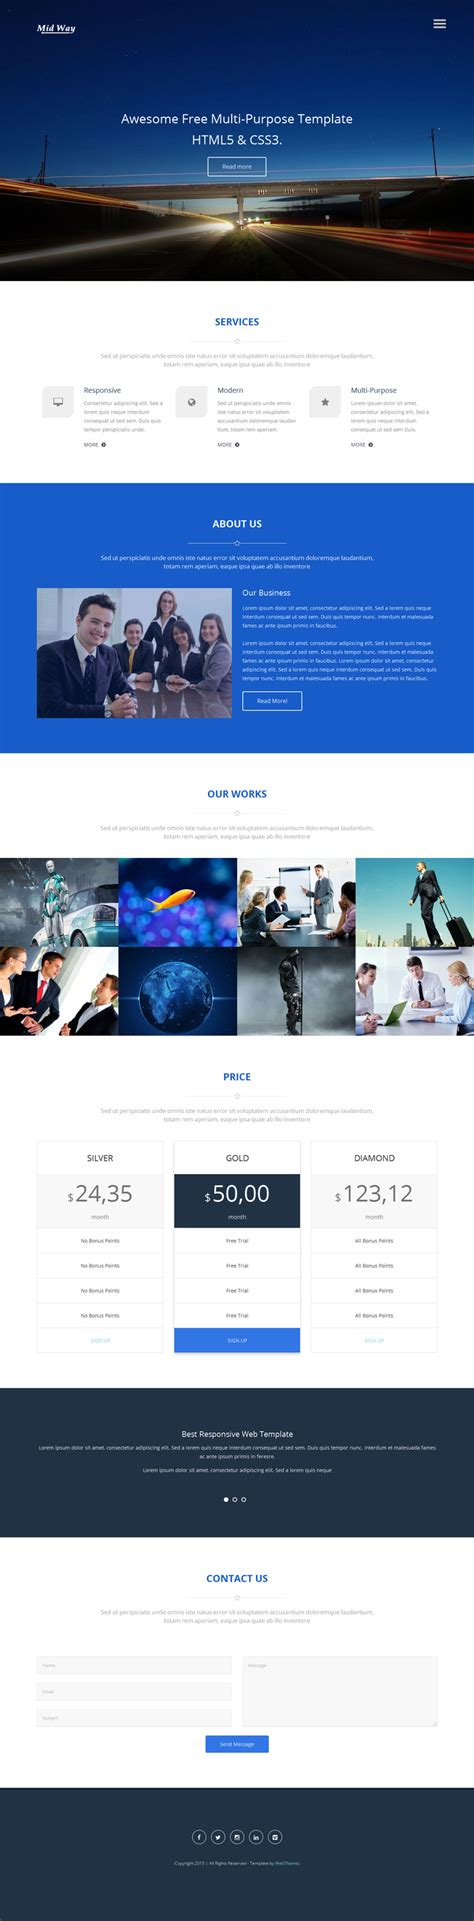 10 best free website html5 templates february 2015